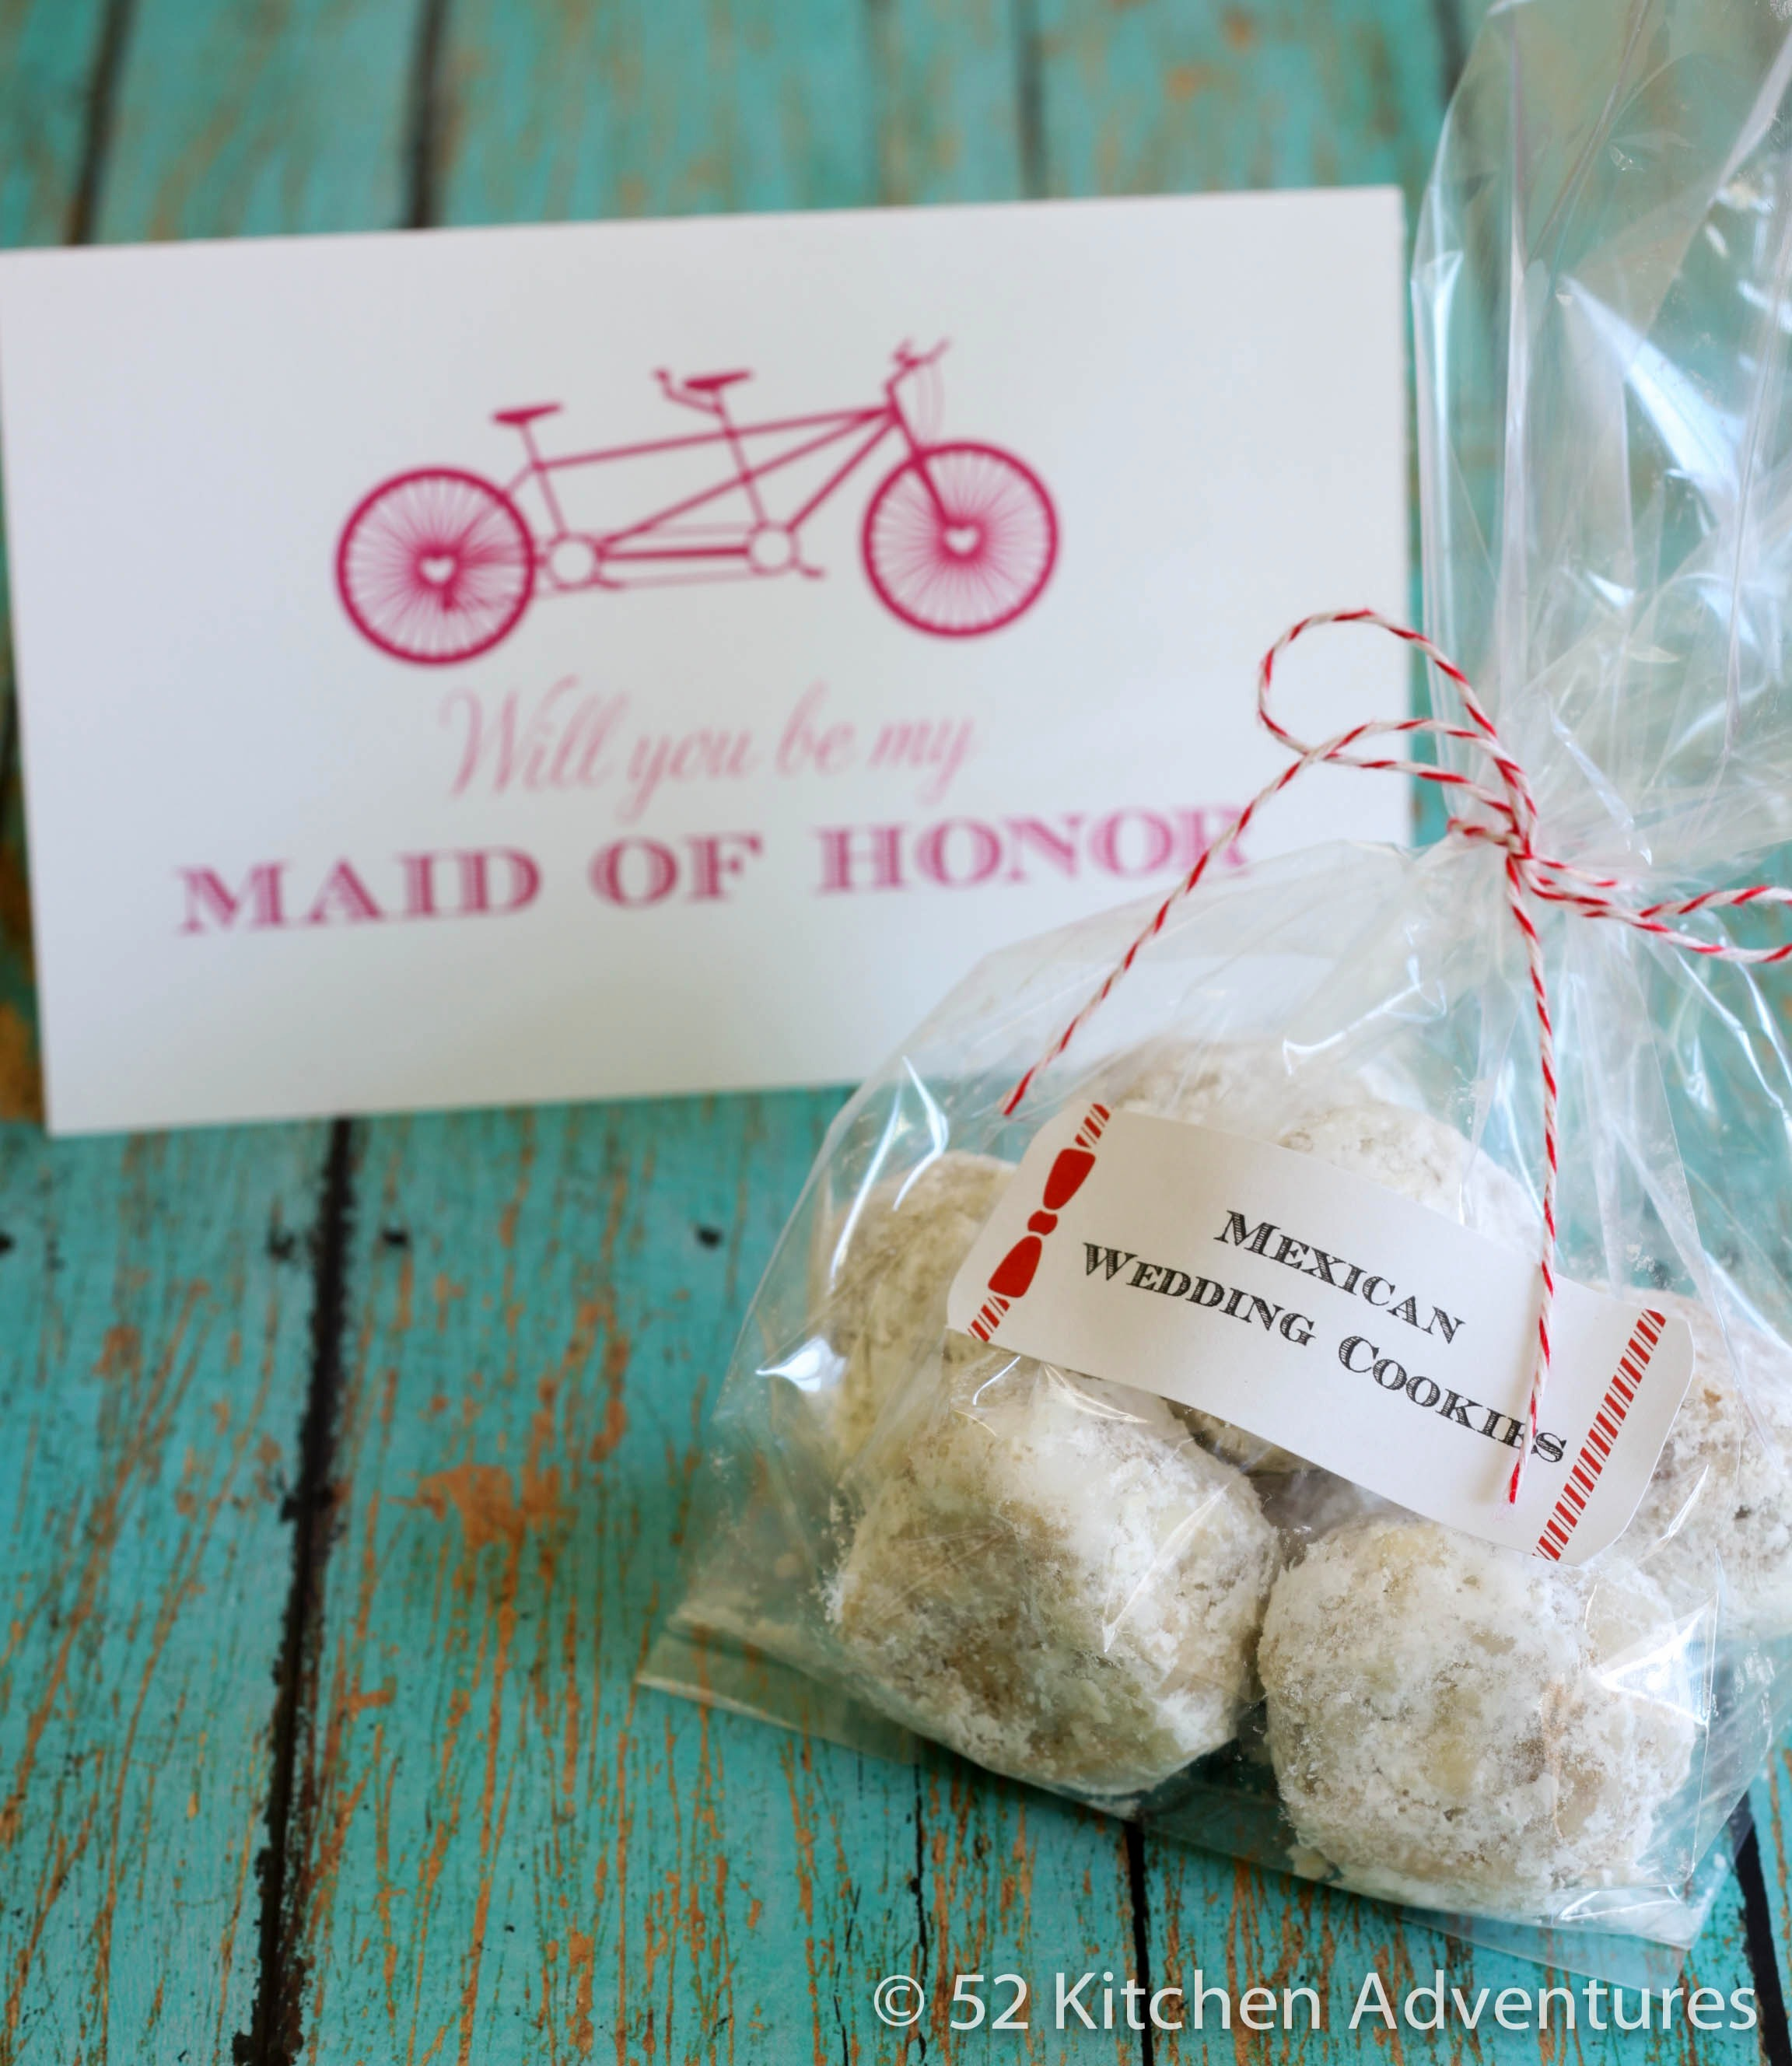 Mexican Wedding Cookies – Maid of Honor